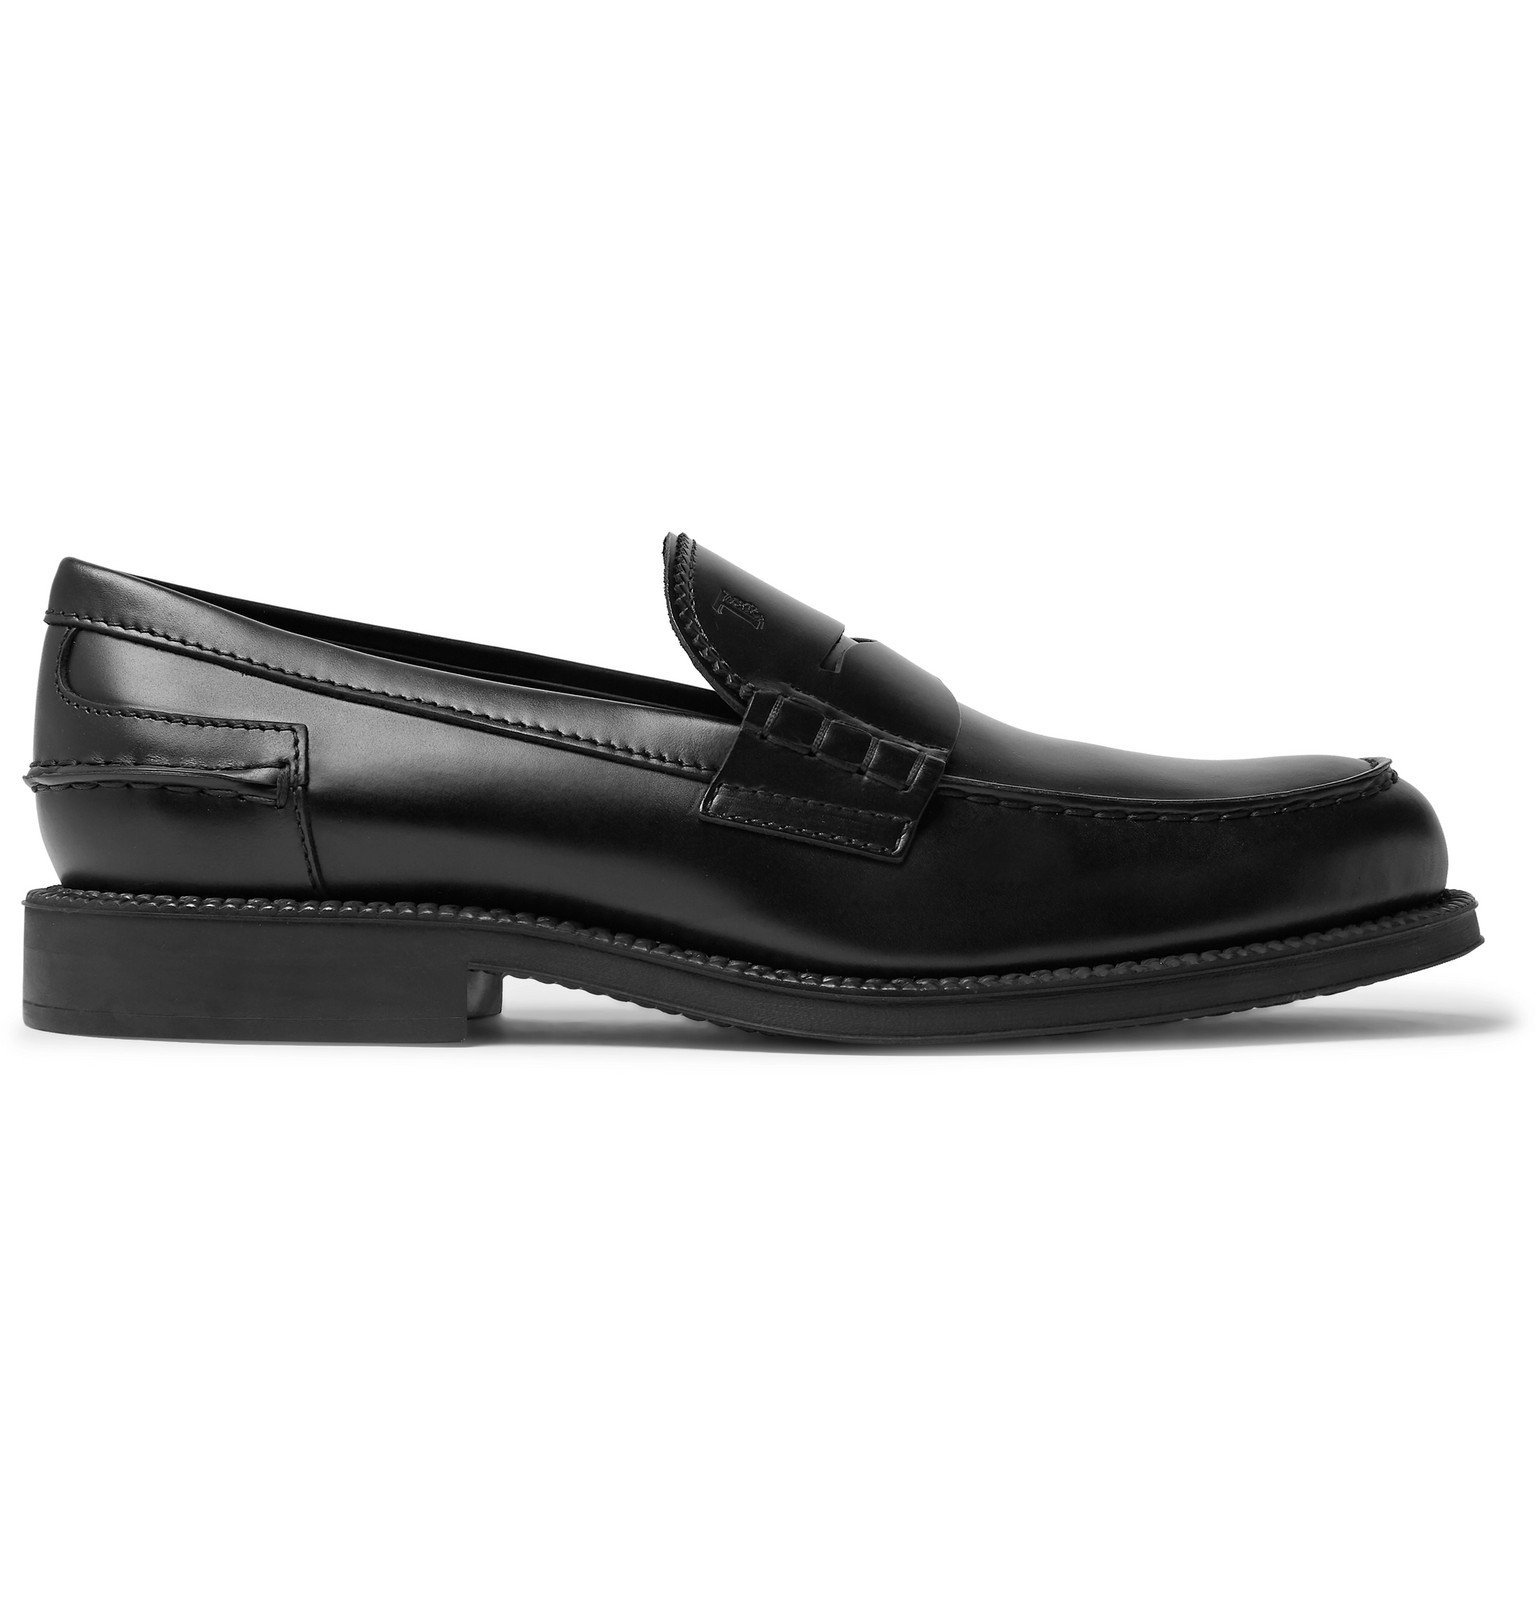 Tod's - Leather Penny Loafers - Black